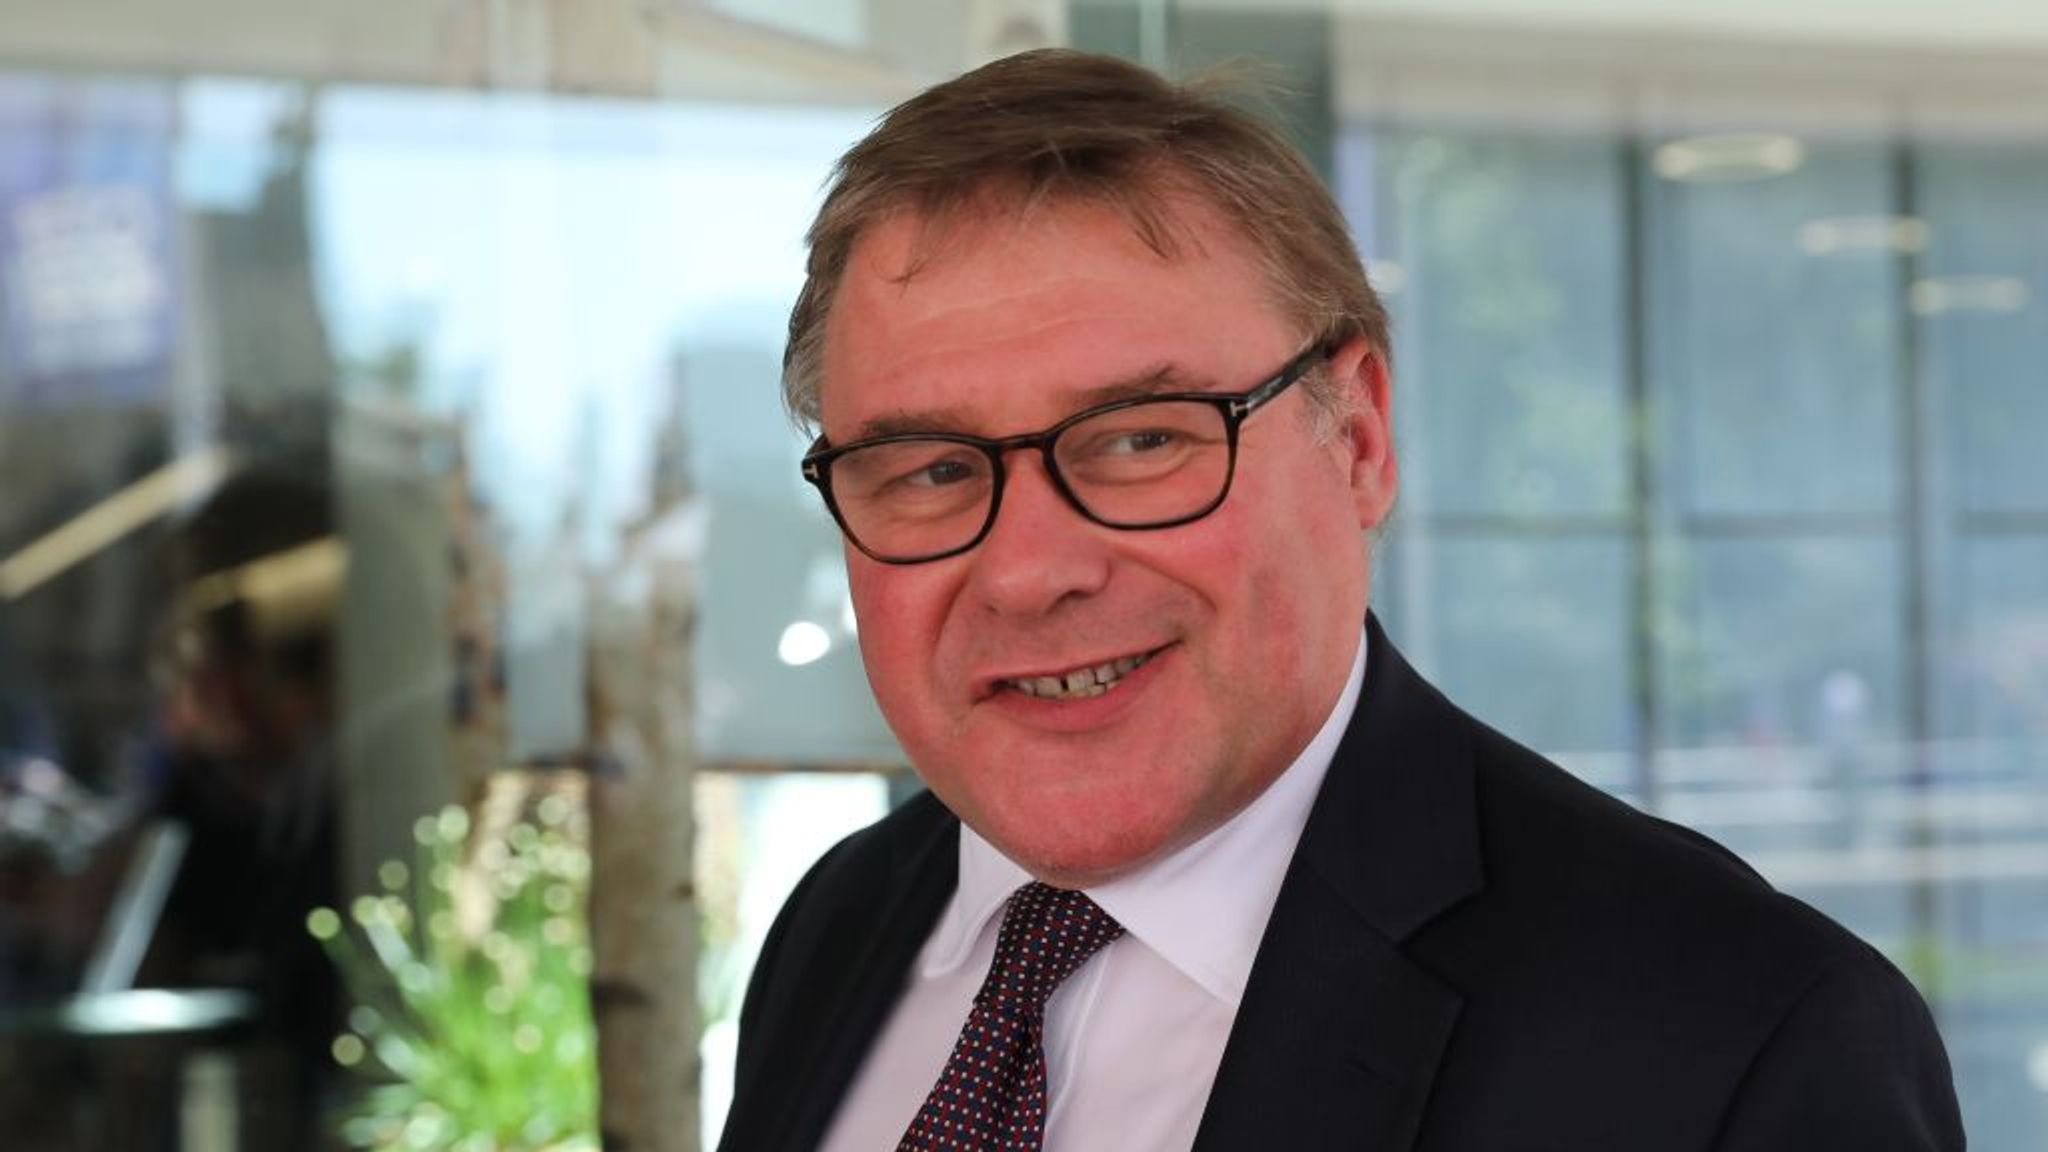 Timing of Boris Johnson claims are 'not an accident', says Tory Brexiteer Mark Francois